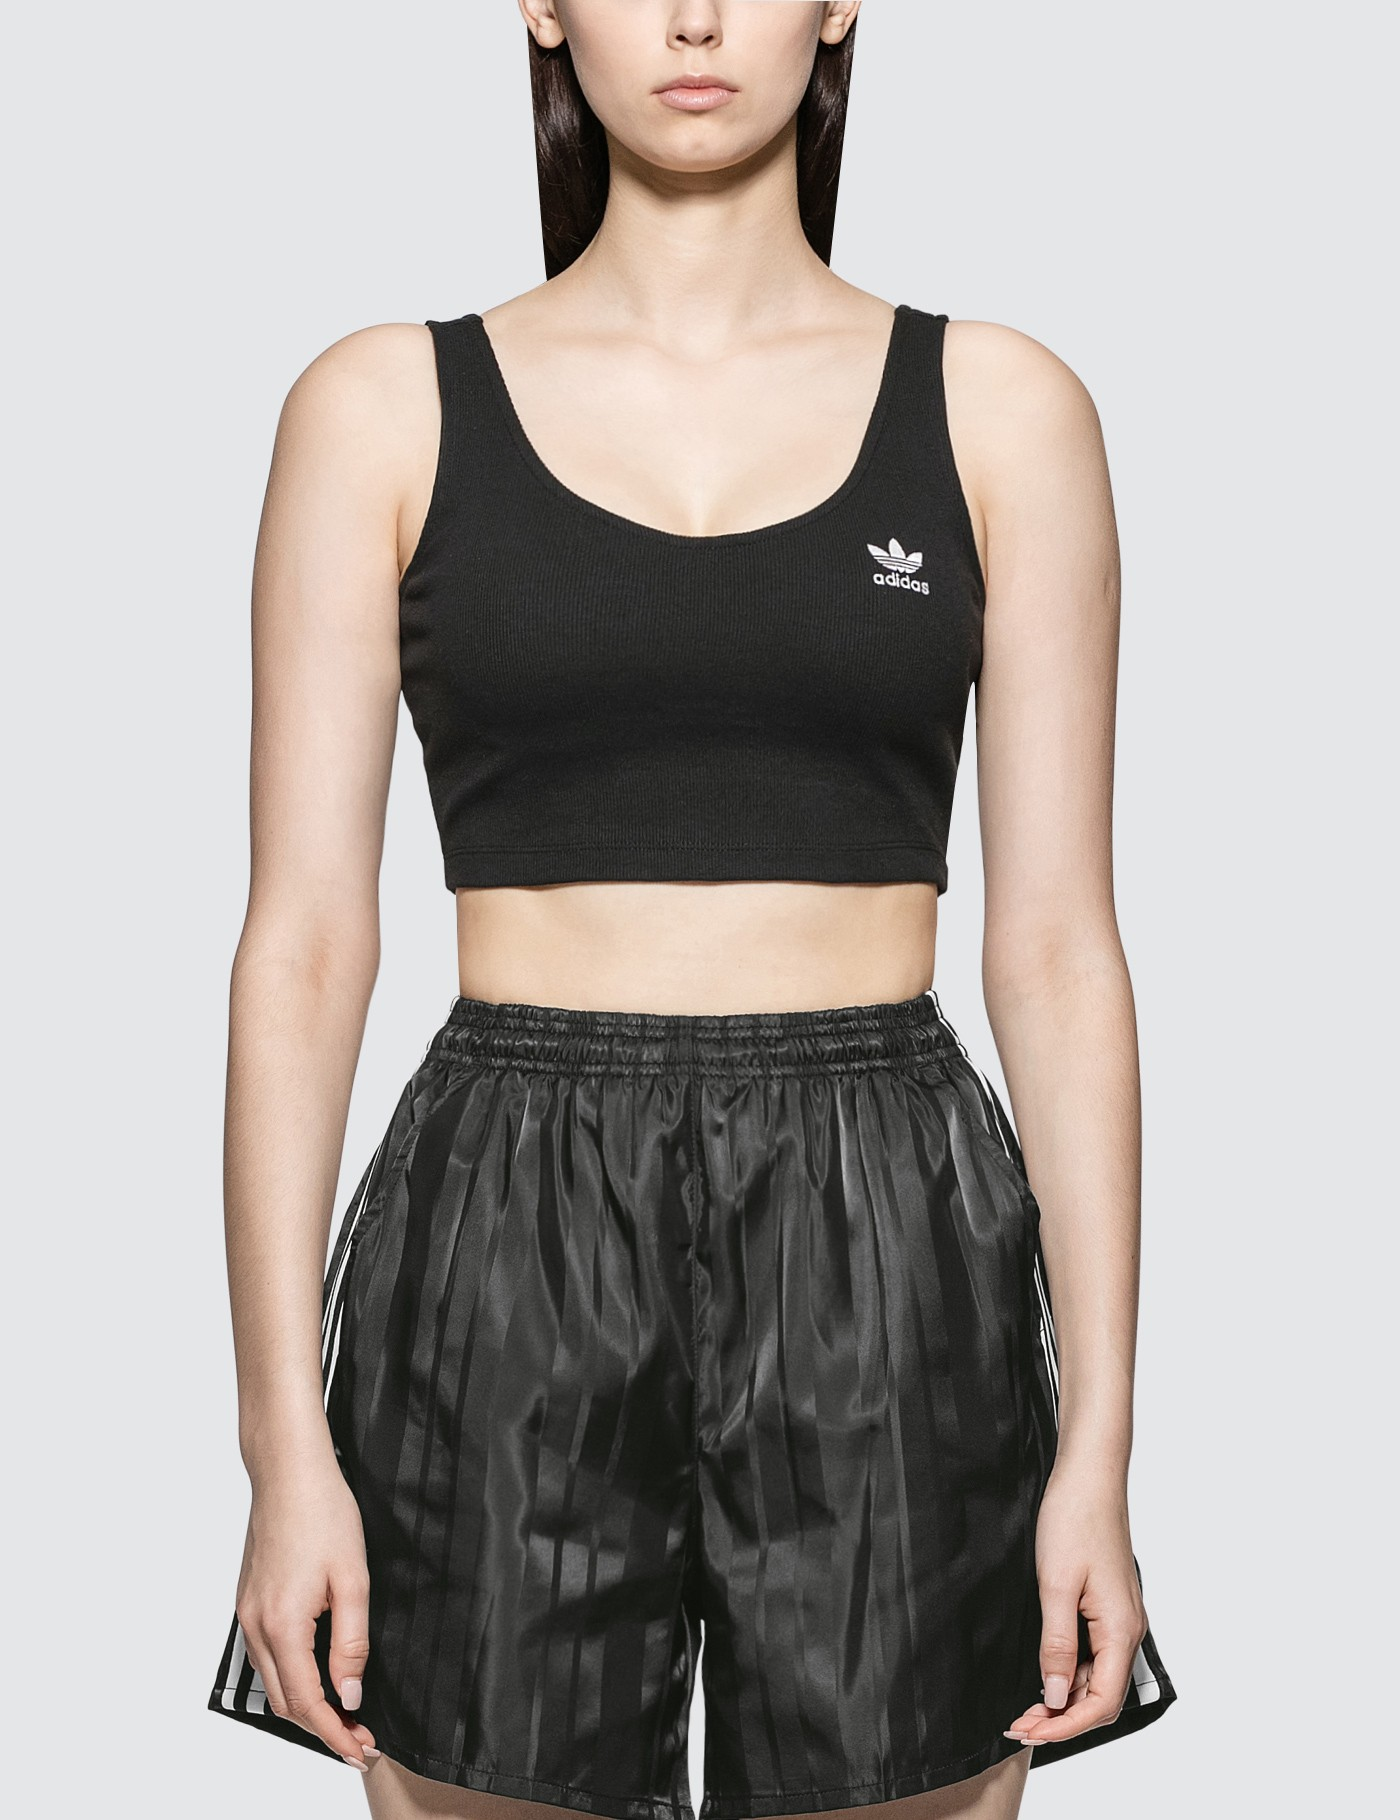 Adidas Originals Styling Complements Cropped Tank Top